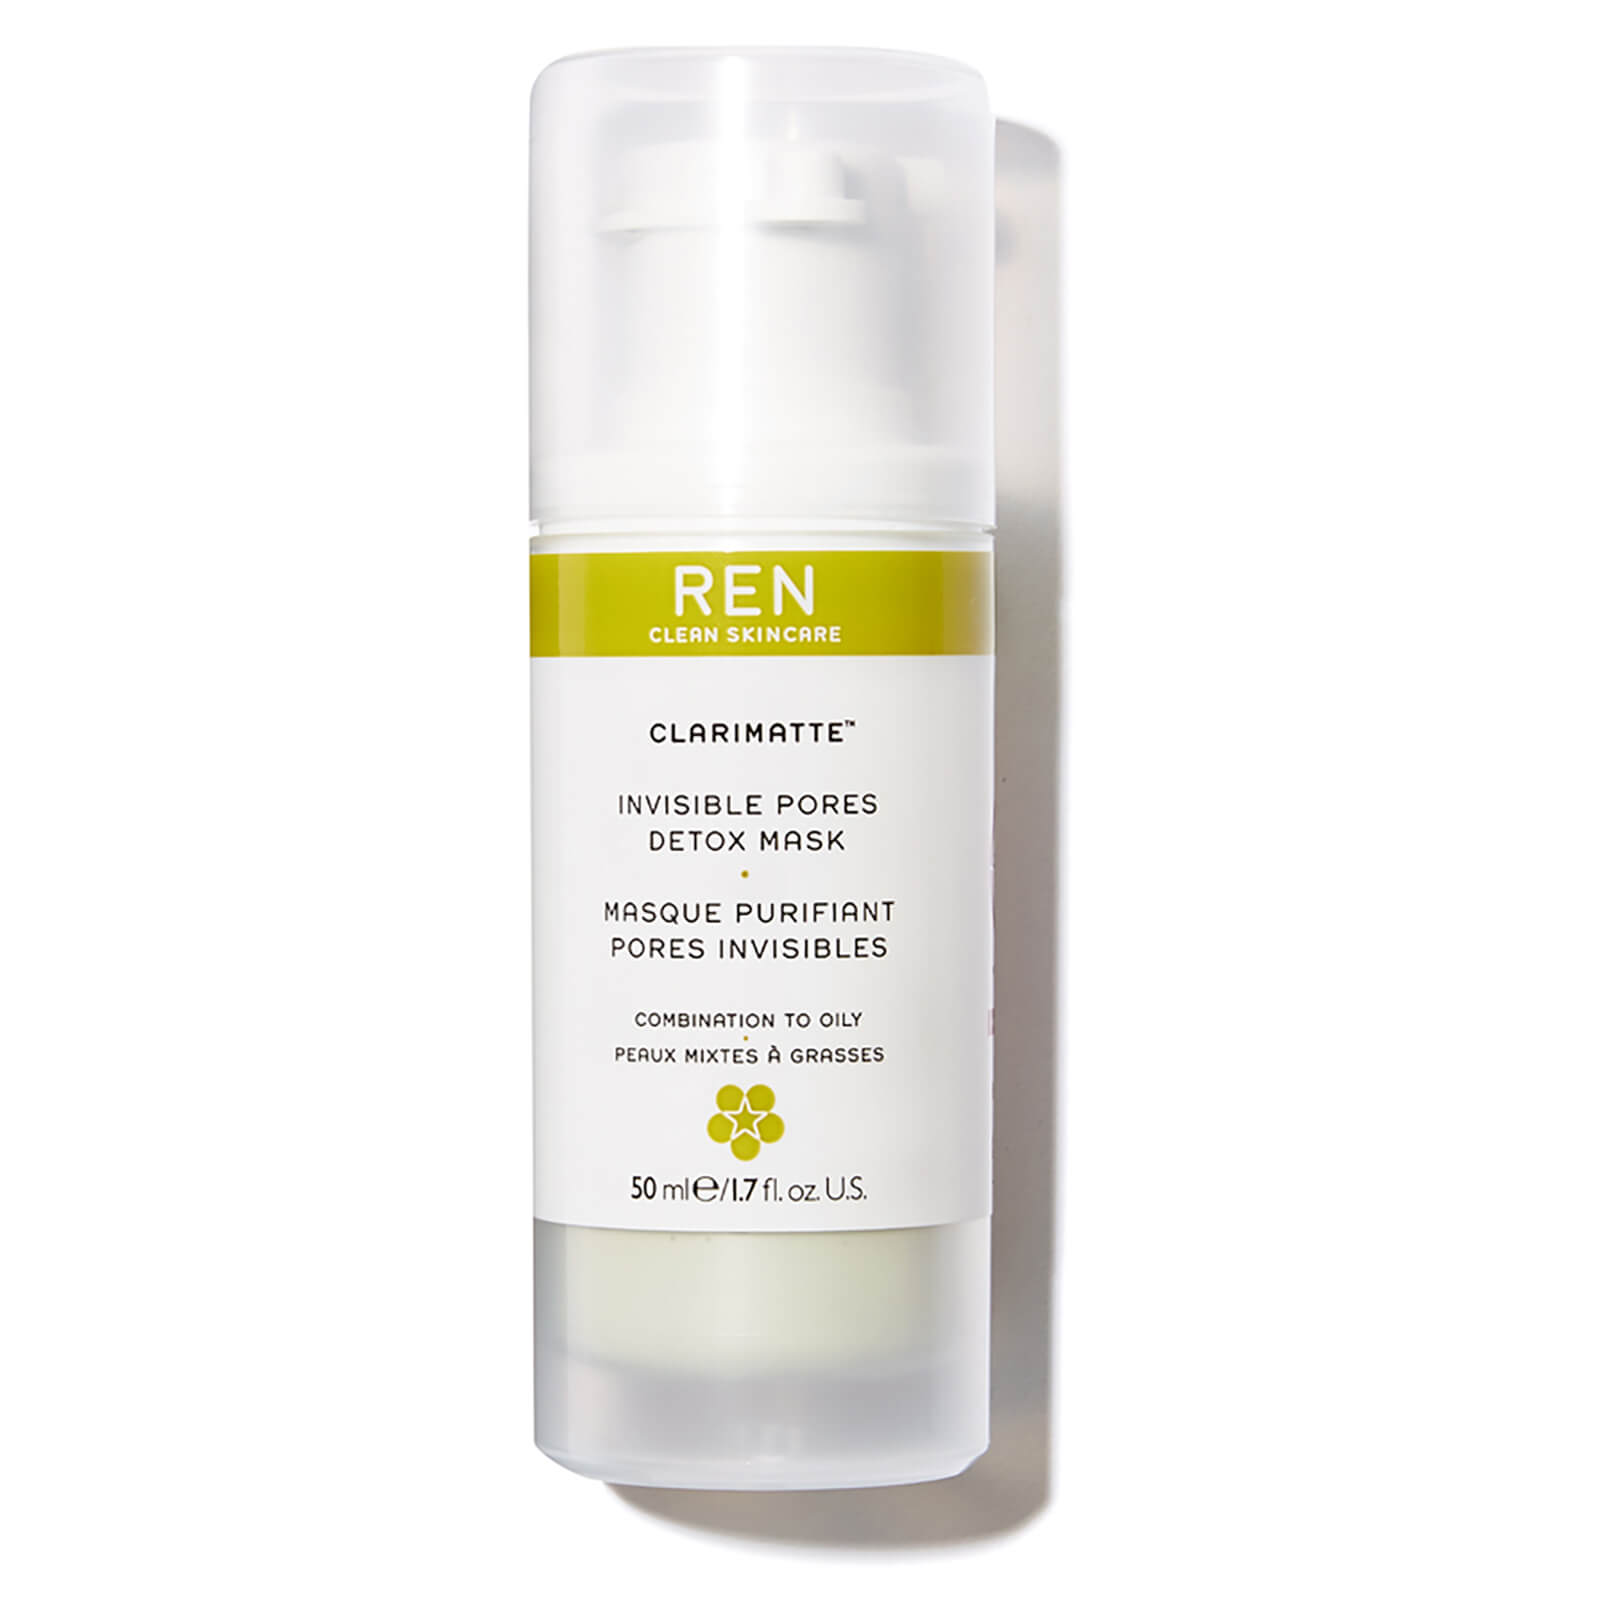 REN Face Clarimatte Invisible Pore Detox Mask